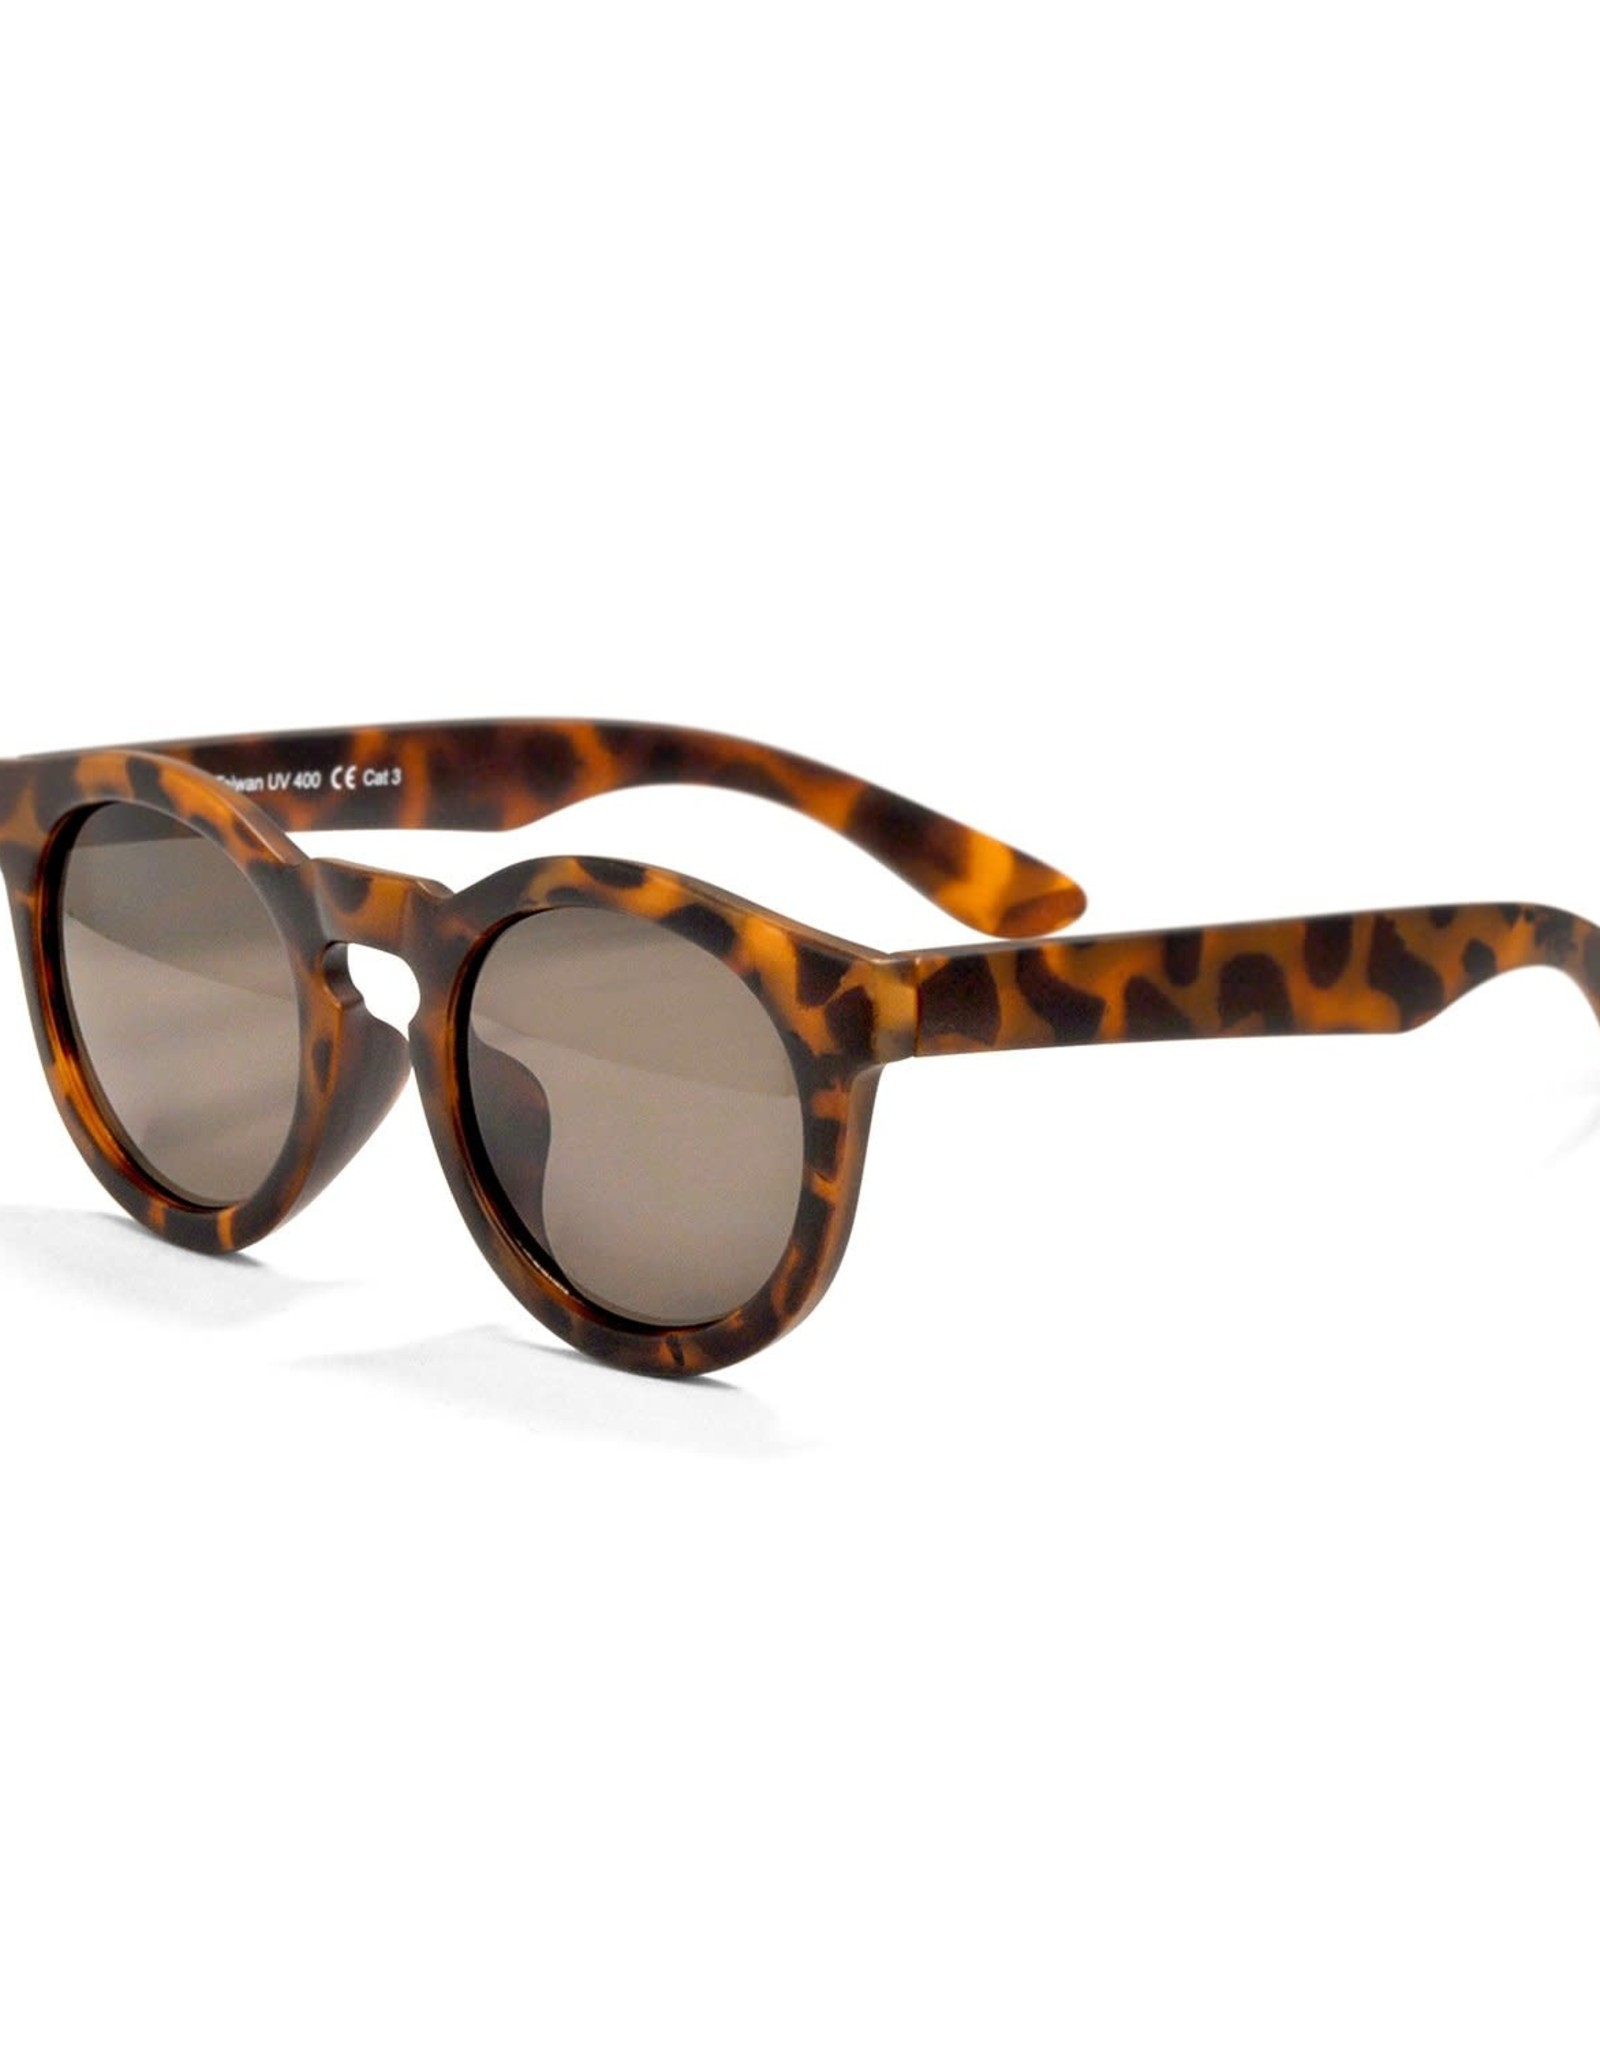 Real Shades Chill Sunglasses, Cheetah